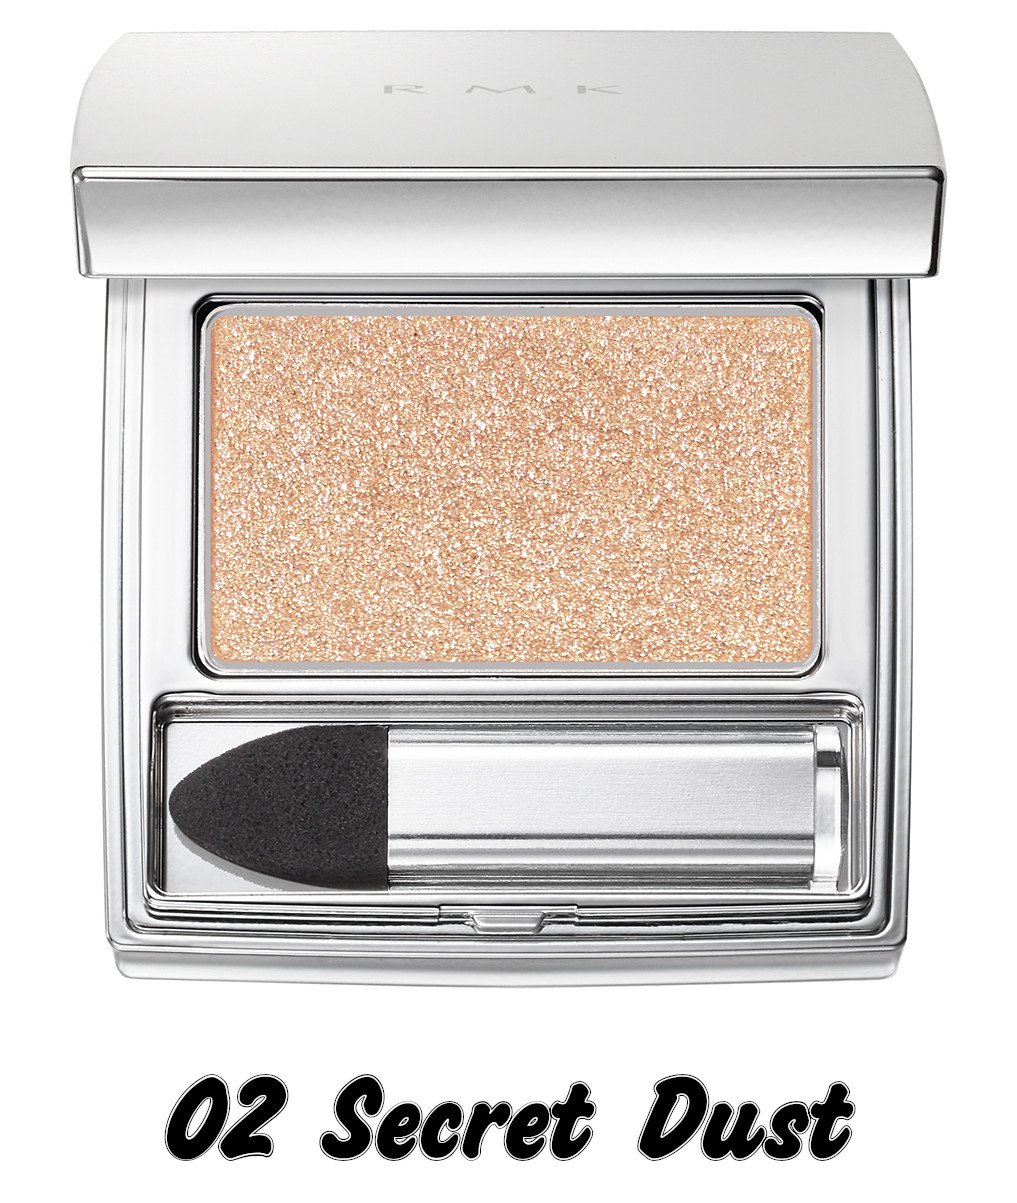 RMK The Now Now Summer 2021 Collection The Now Now Eyes 02 Secret Dust